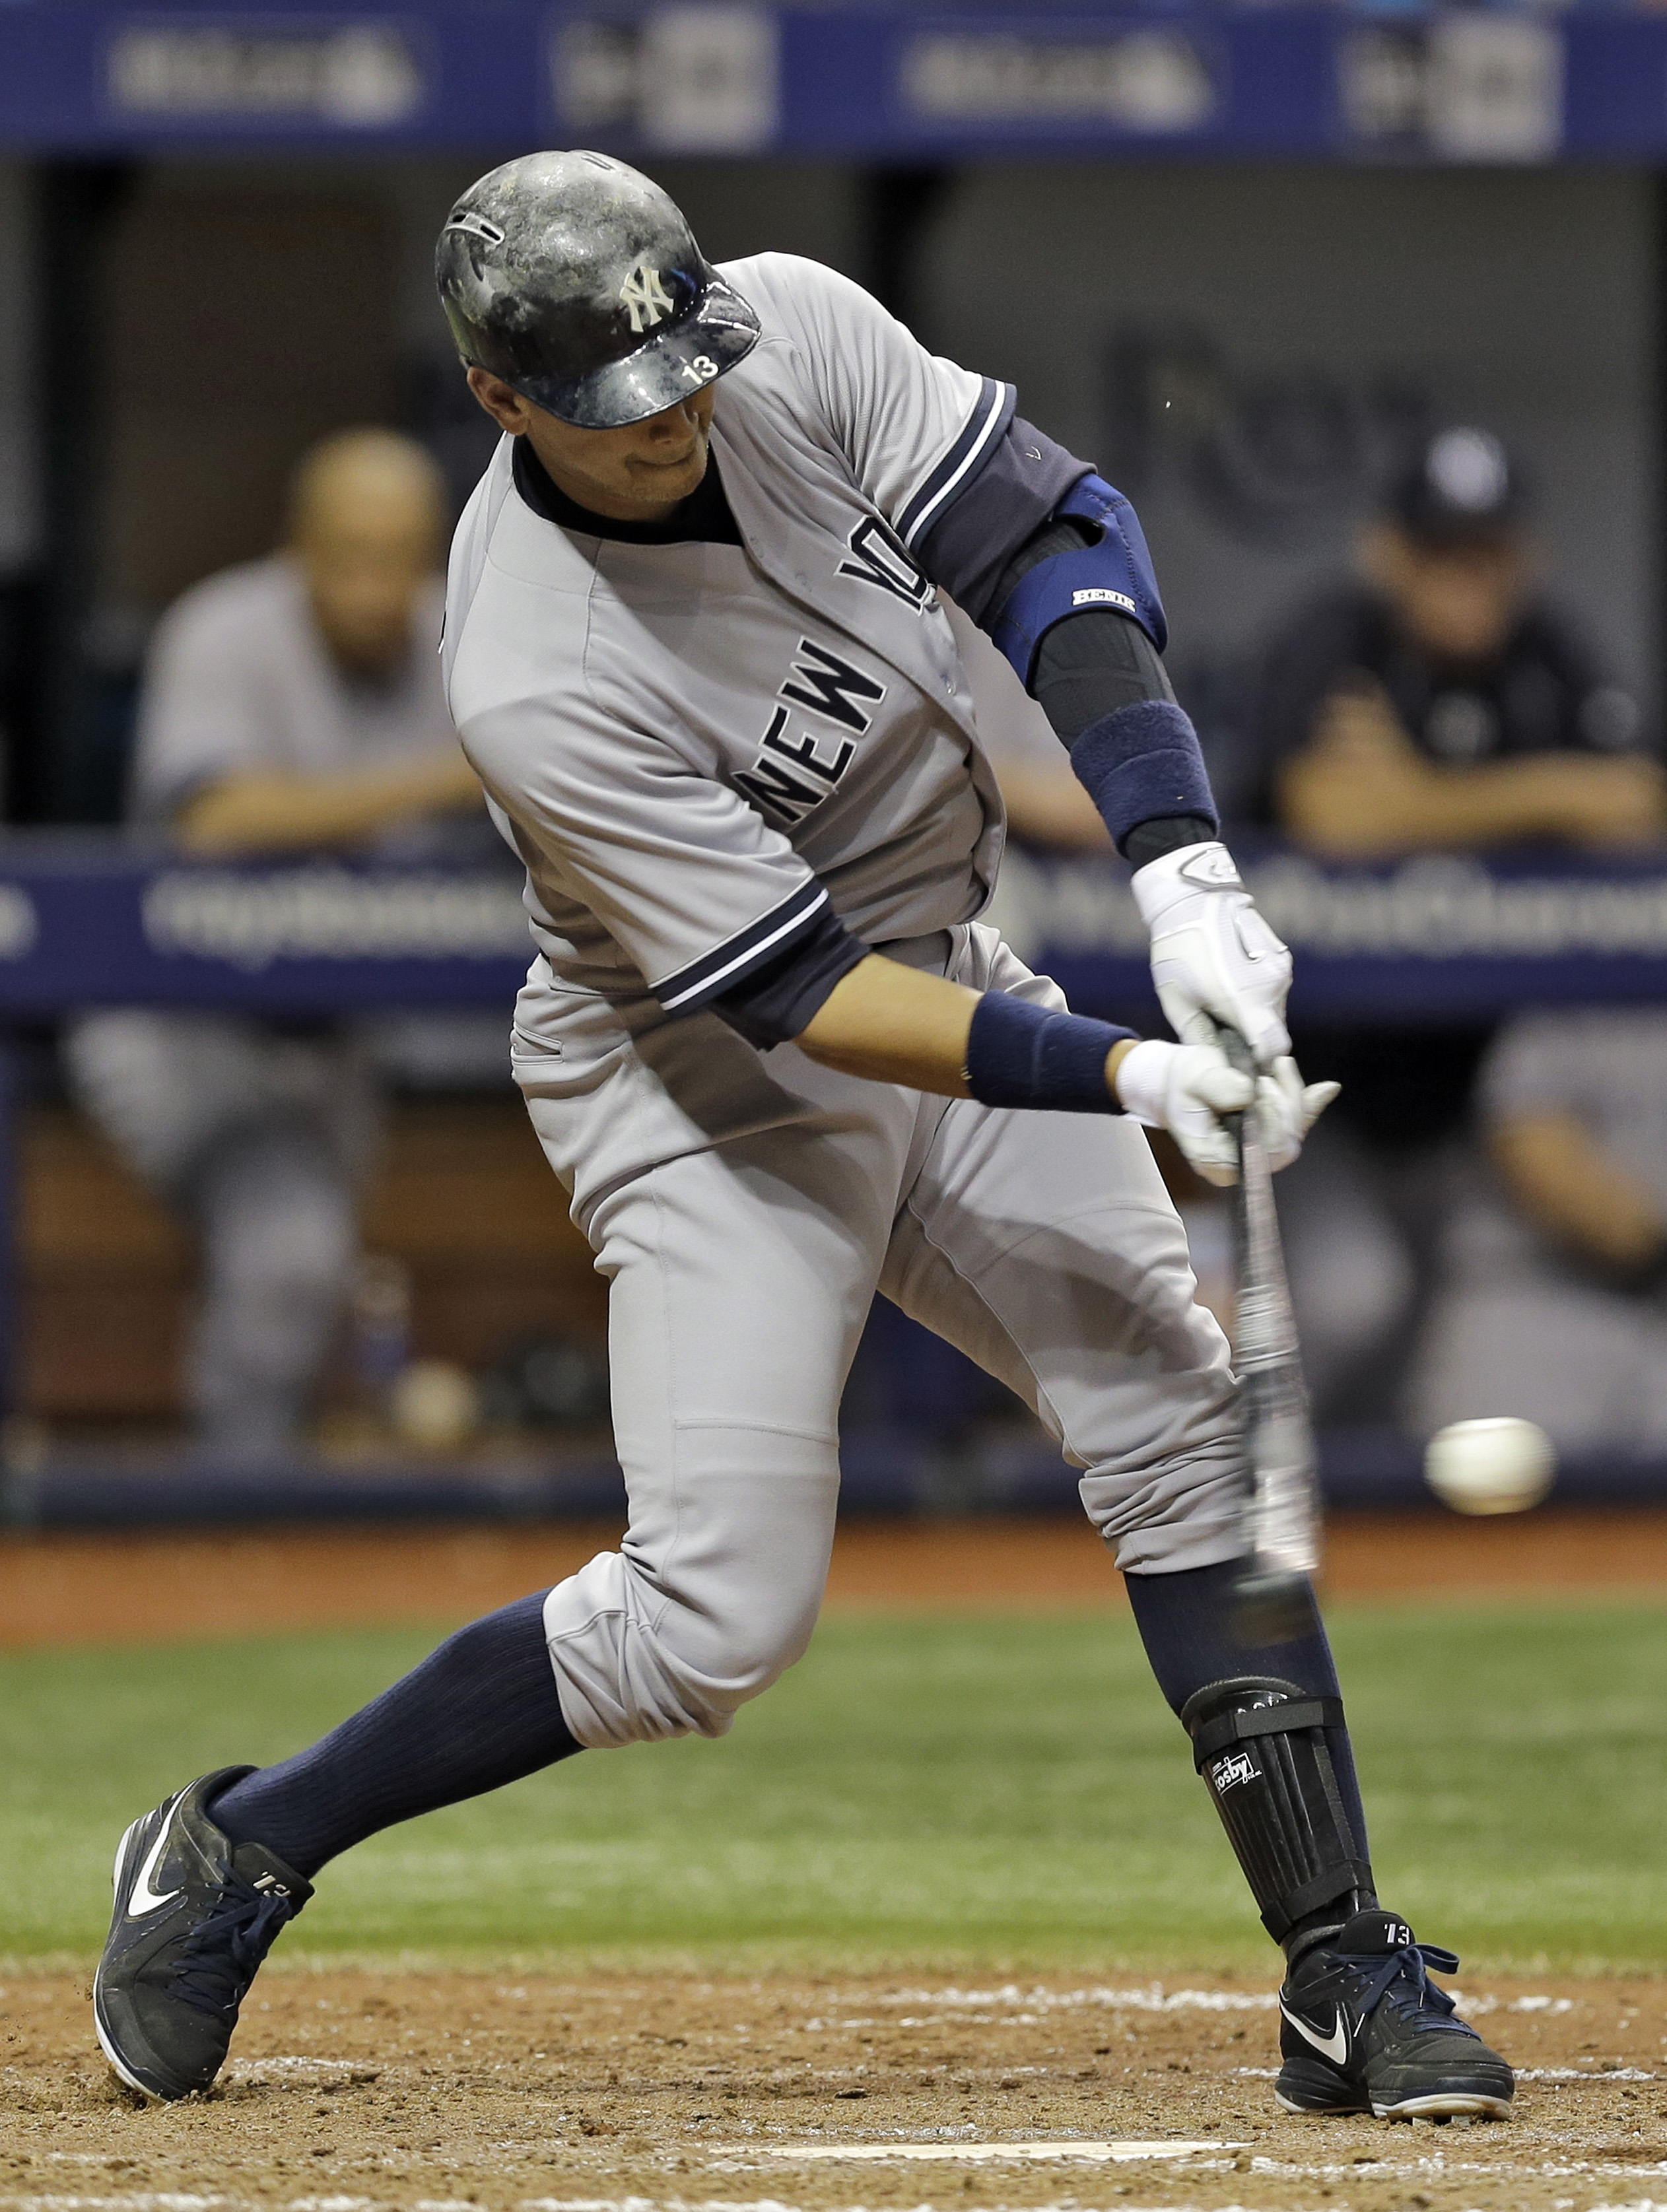 New York Yankees' Alex Rodriguez lines a single off Tampa Bay Rays relief pitcher Brandon Gomes during the seventh inning of a baseball game Wednesday, May 13, 2015, in St. Petersburg, Fla. The Rays defeated the Yankees 3-2. (AP Photo/Chris O'Meara)